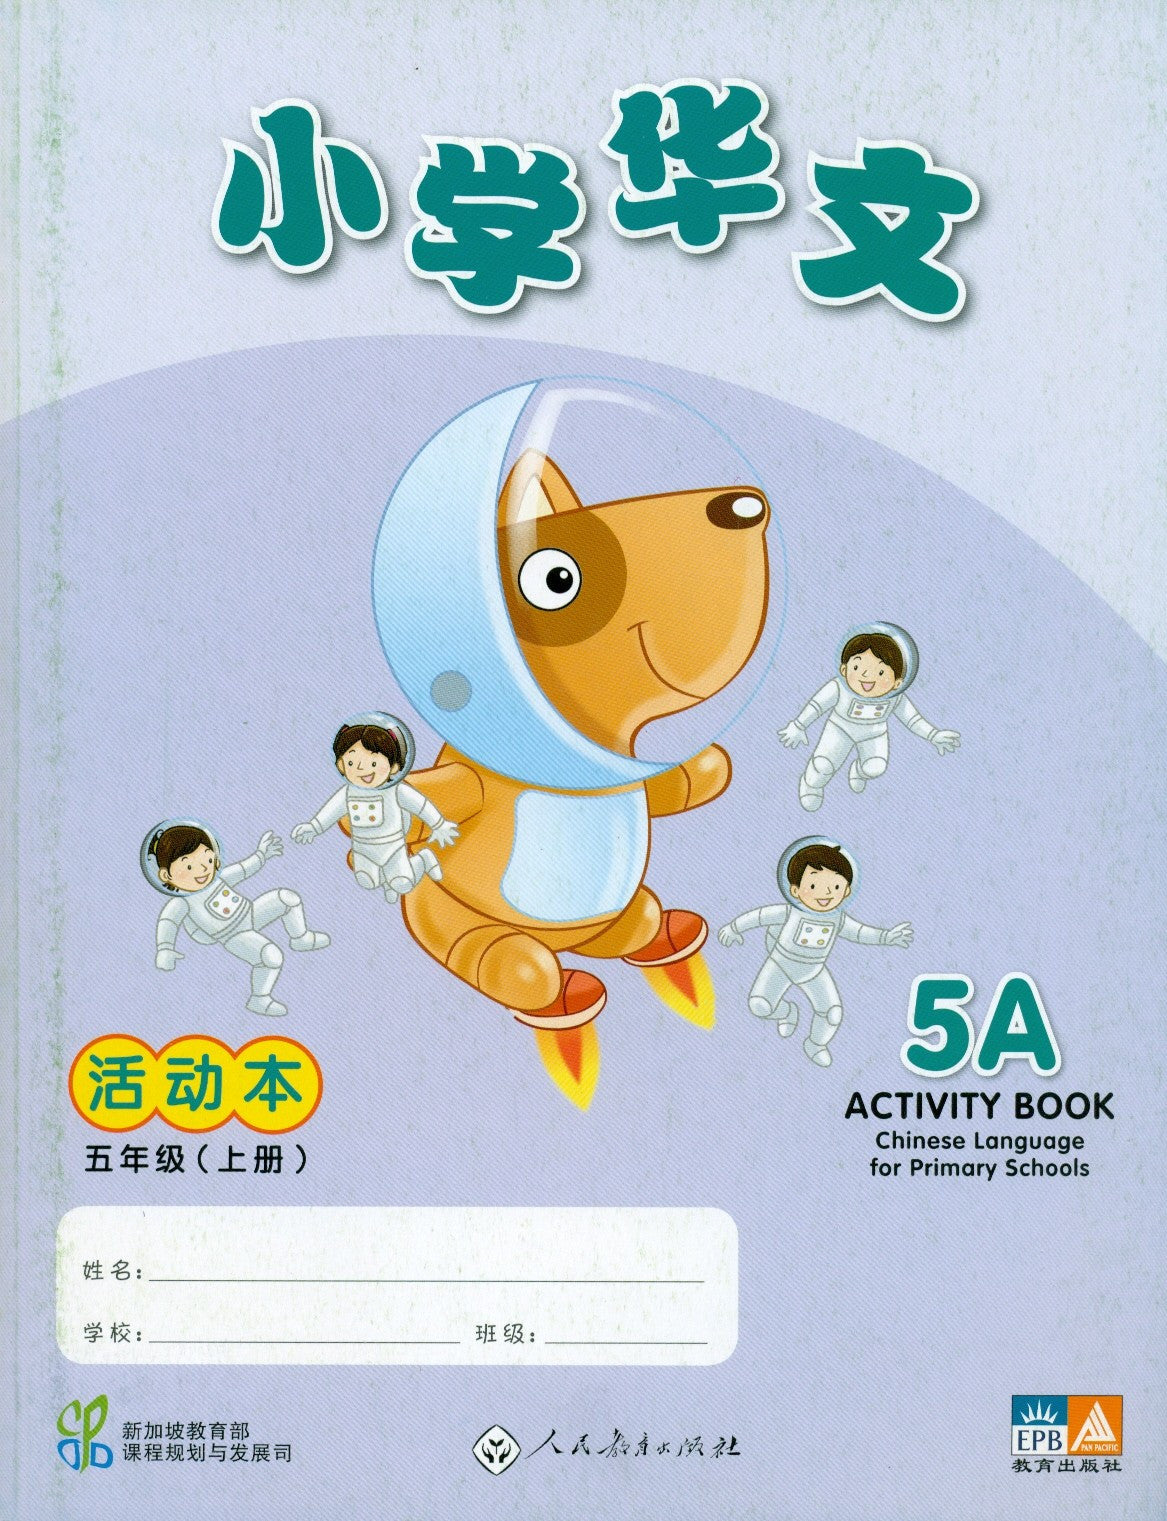 Chinese Language for Primary Schools: Activity Book 5A